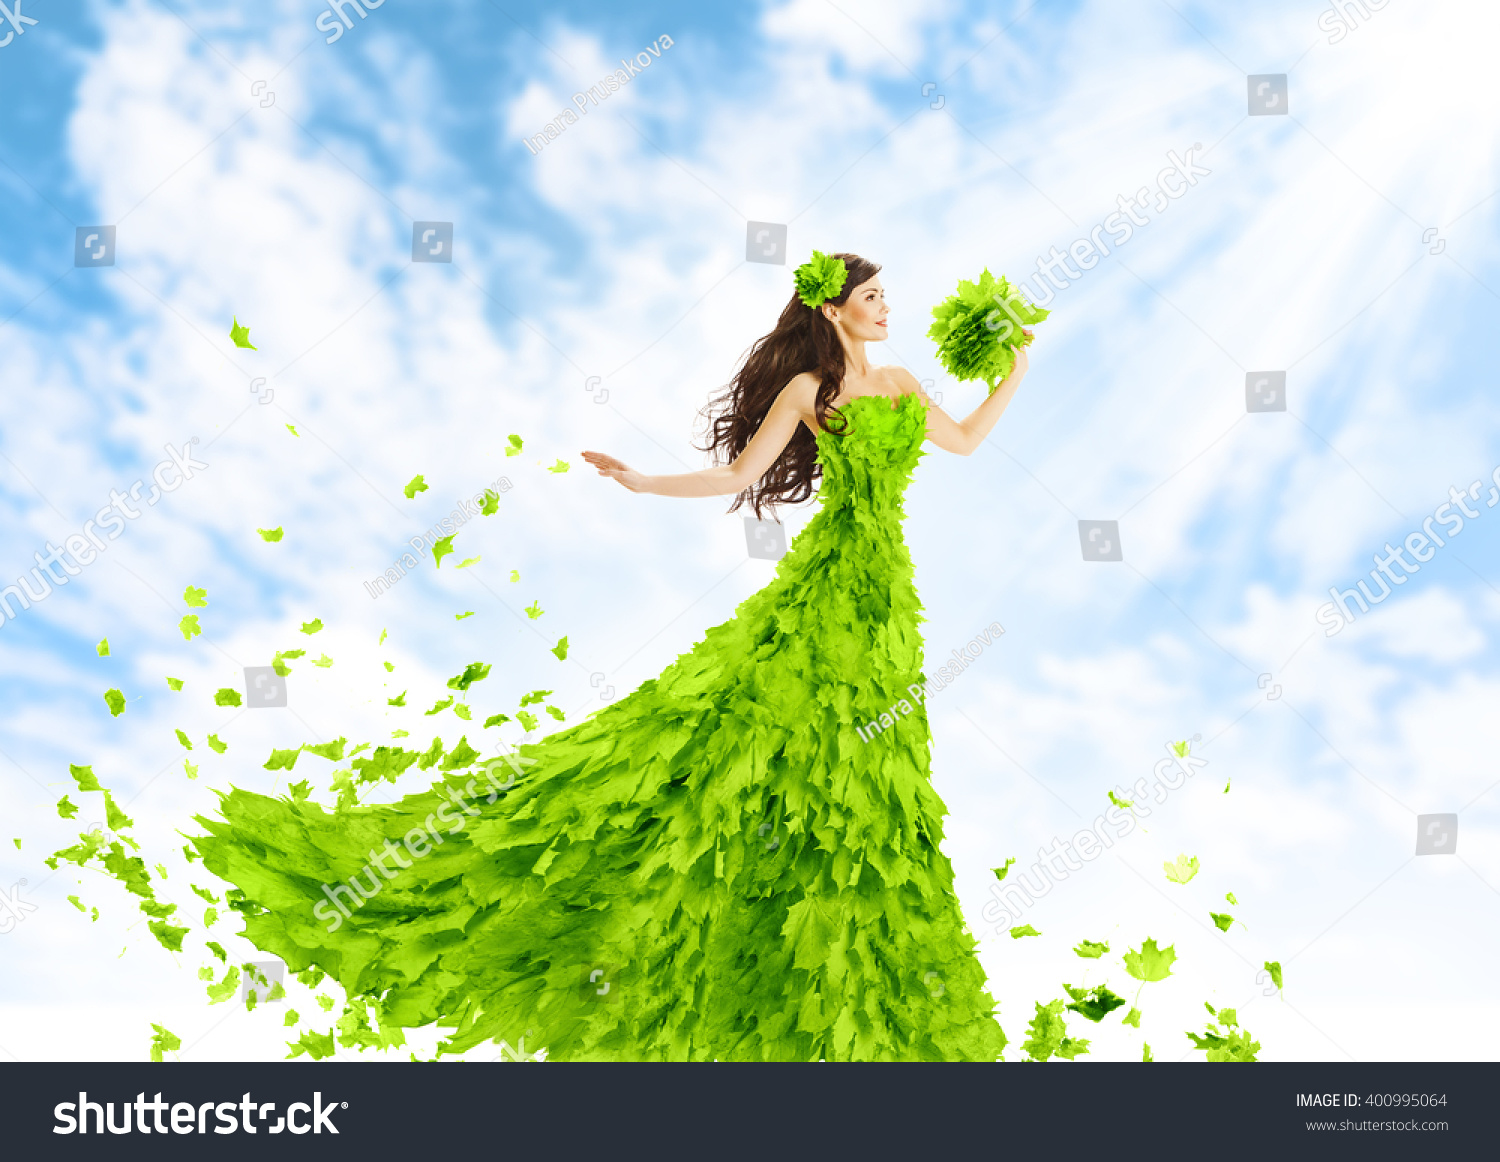 woman green leaves dress nature fashion stock photo edit now